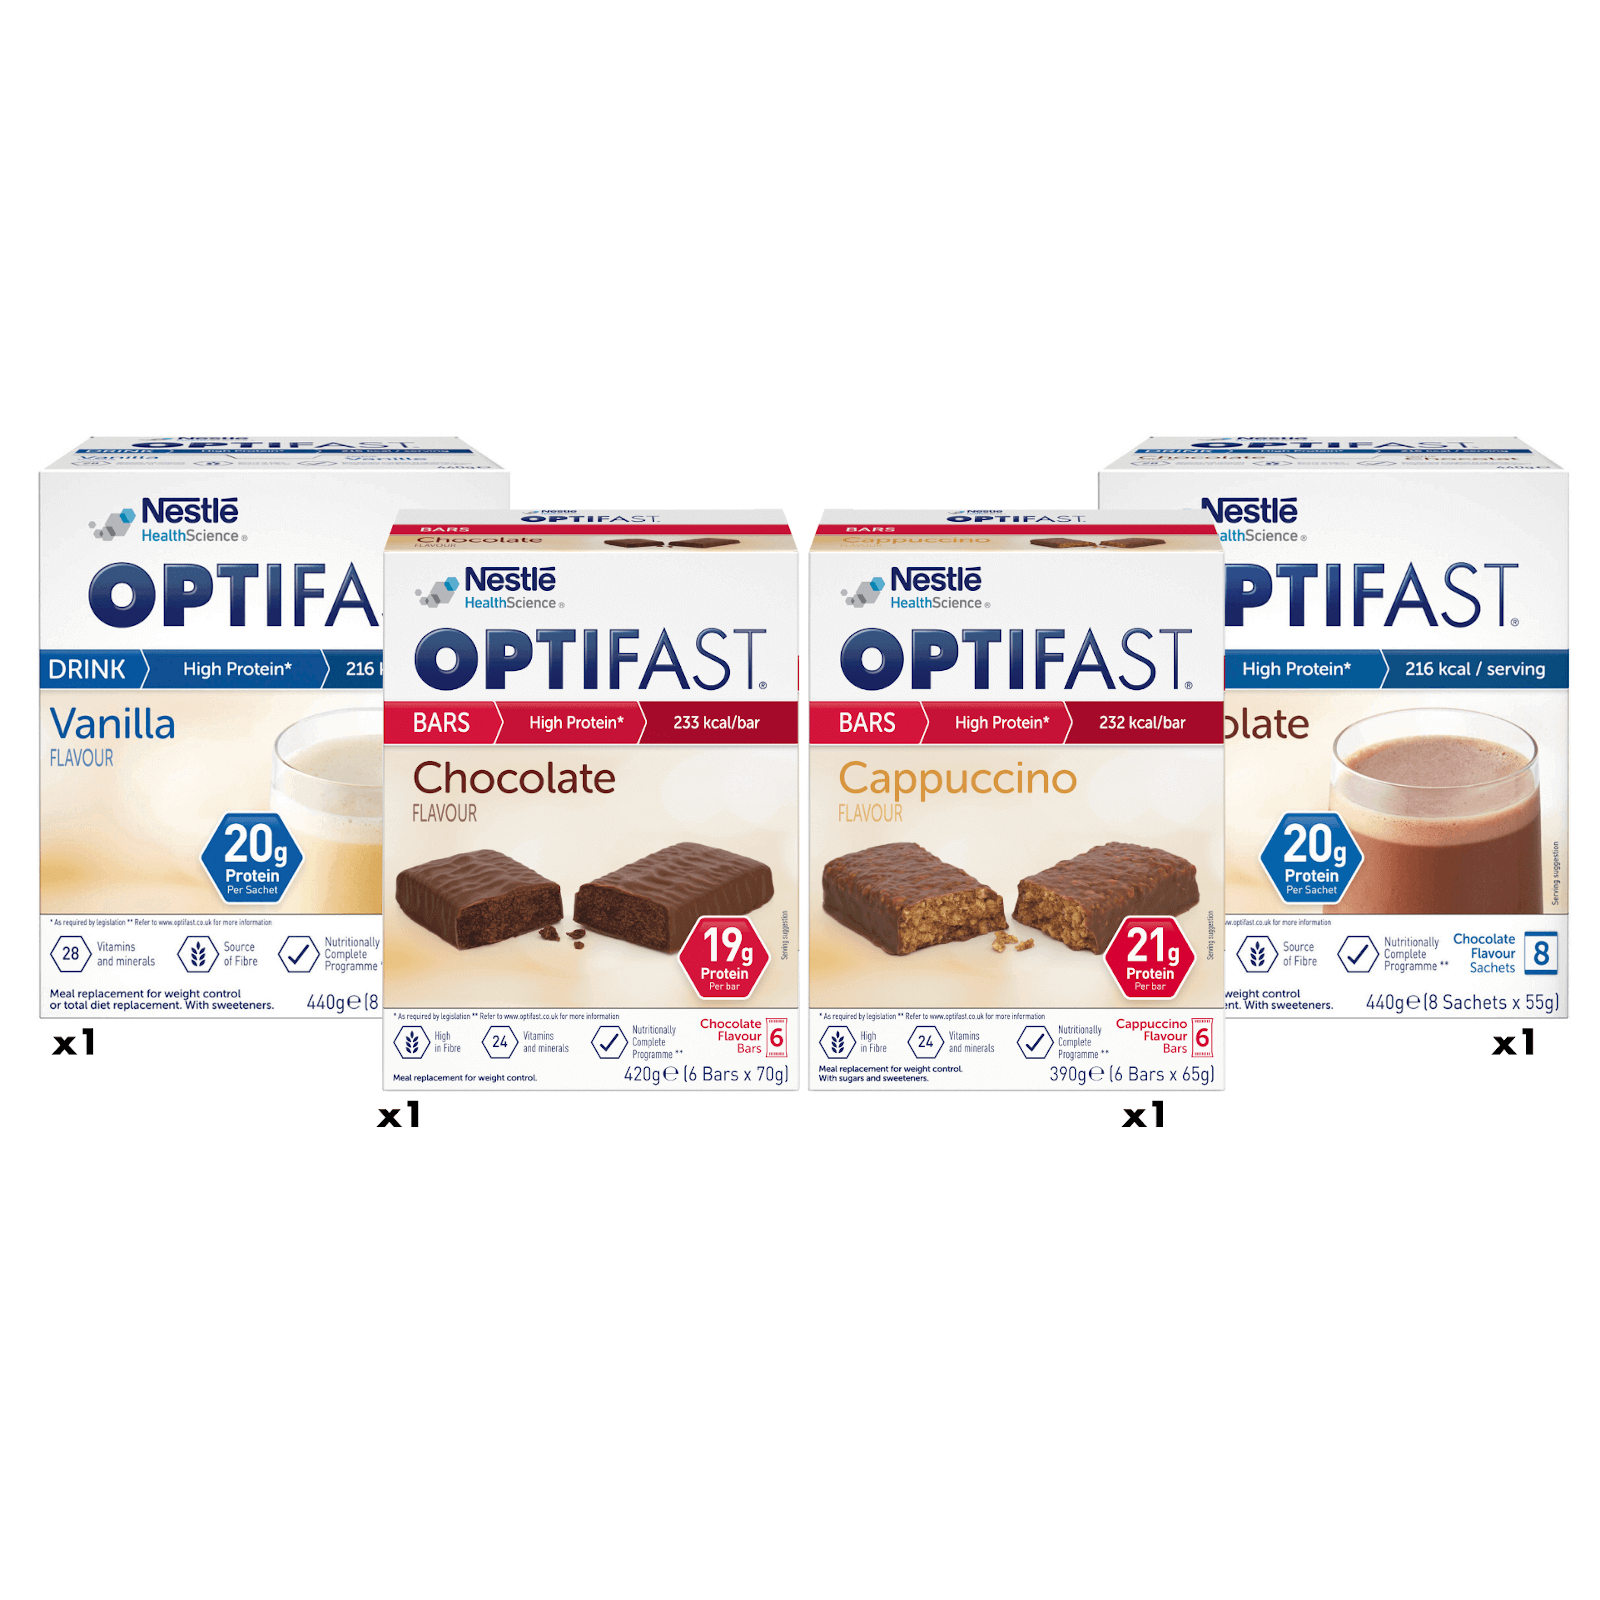 Image showing a range of the OPTIFAST products